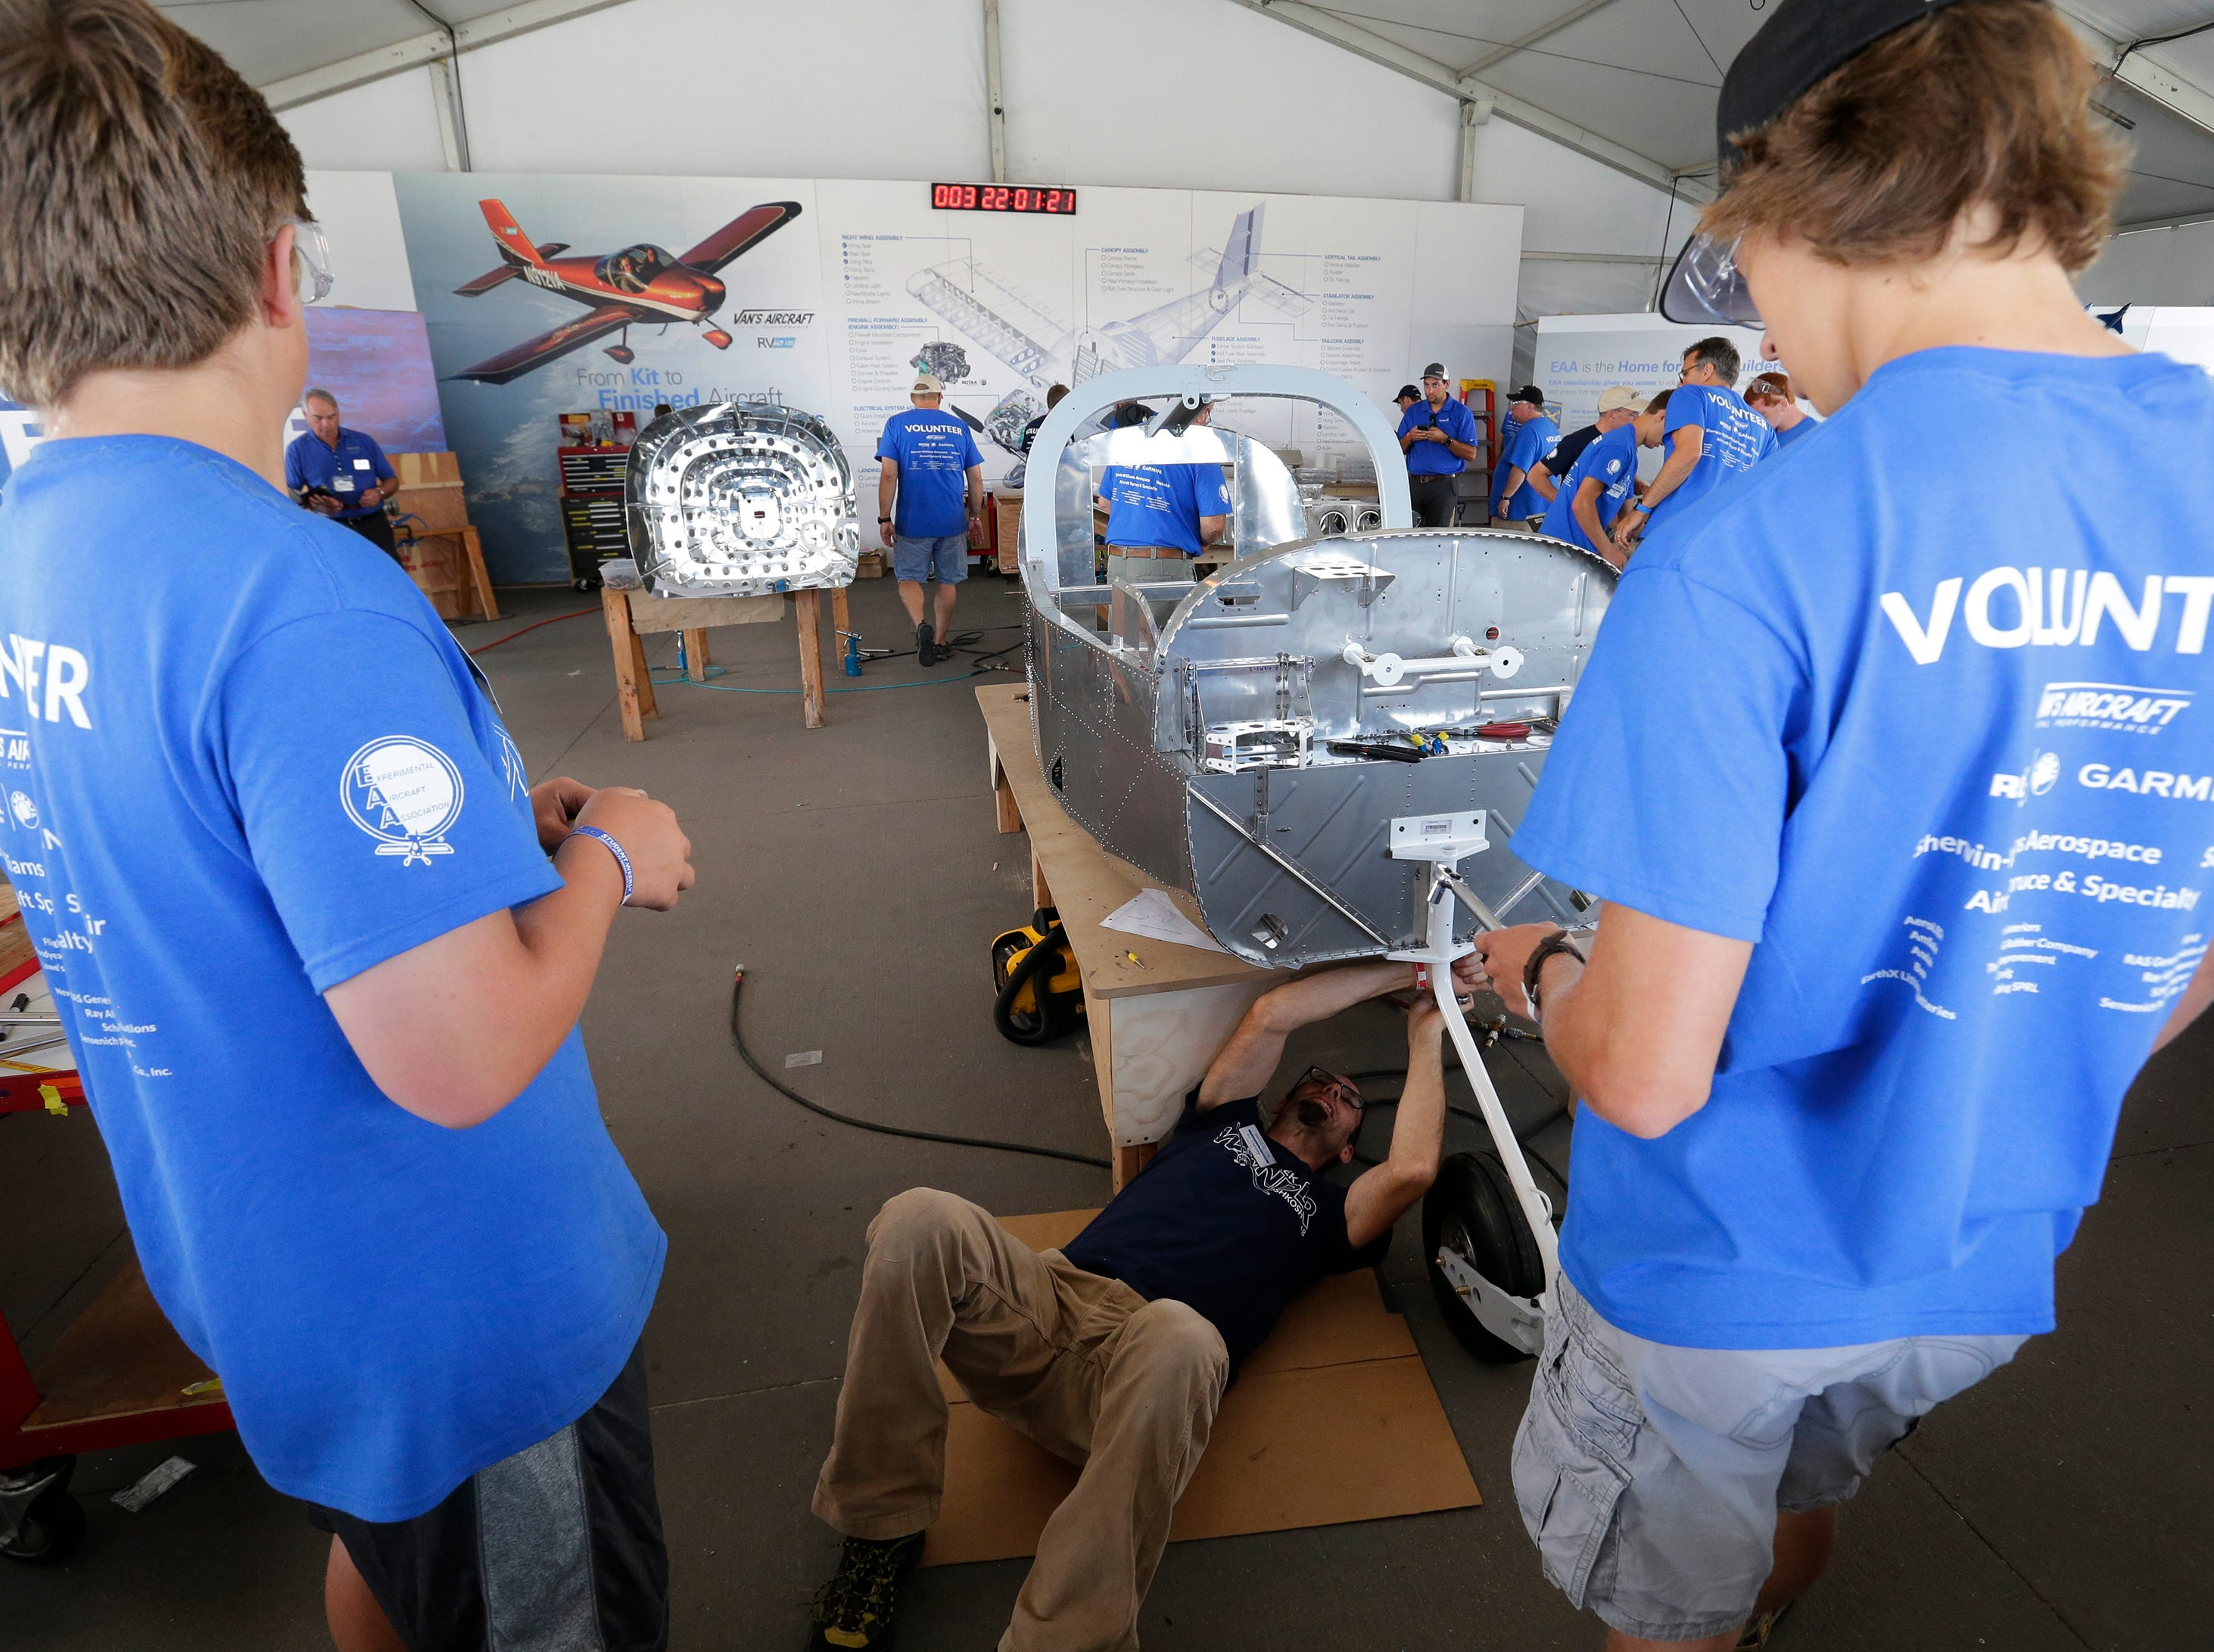 Ed Chesney attaches the front landing gear and wheel on the One Week Wonder, Thursday, July 26, 2018, in Oshkosh, Wis.  The 66th annual Experimental Aircraft Association Fly-In Convention, AirVenture 2018 draws over 500,000 people and over 10,000 planes from more than 70 nations annually to the area.  The convention runs through July 29.